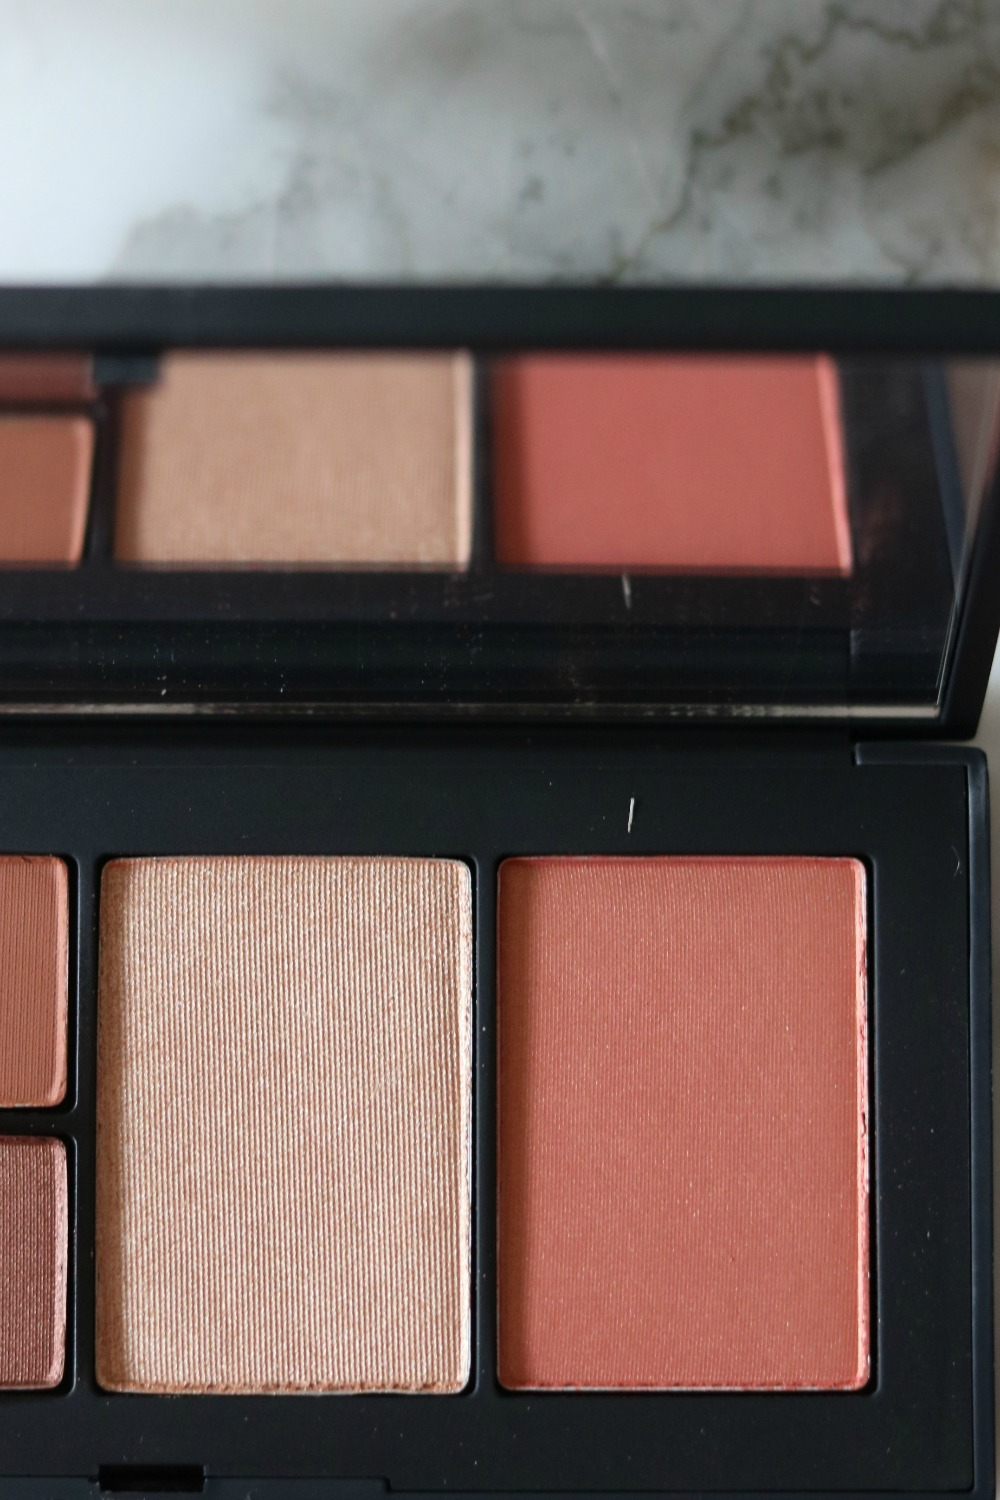 """NARS Fever Dream Palette in """"Wild Thing"""" Review I Dreaminlace.com #makeup #springmakeup"""